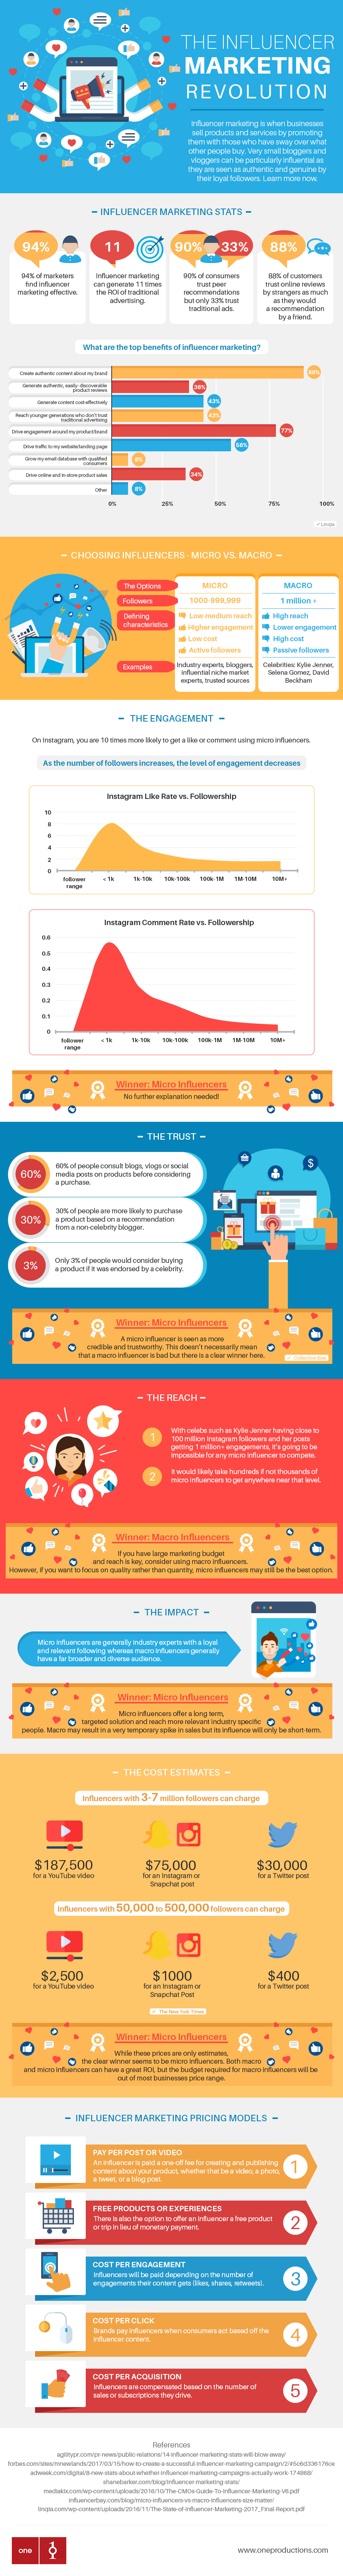 The-influencer-marketing-revolution-Infographic